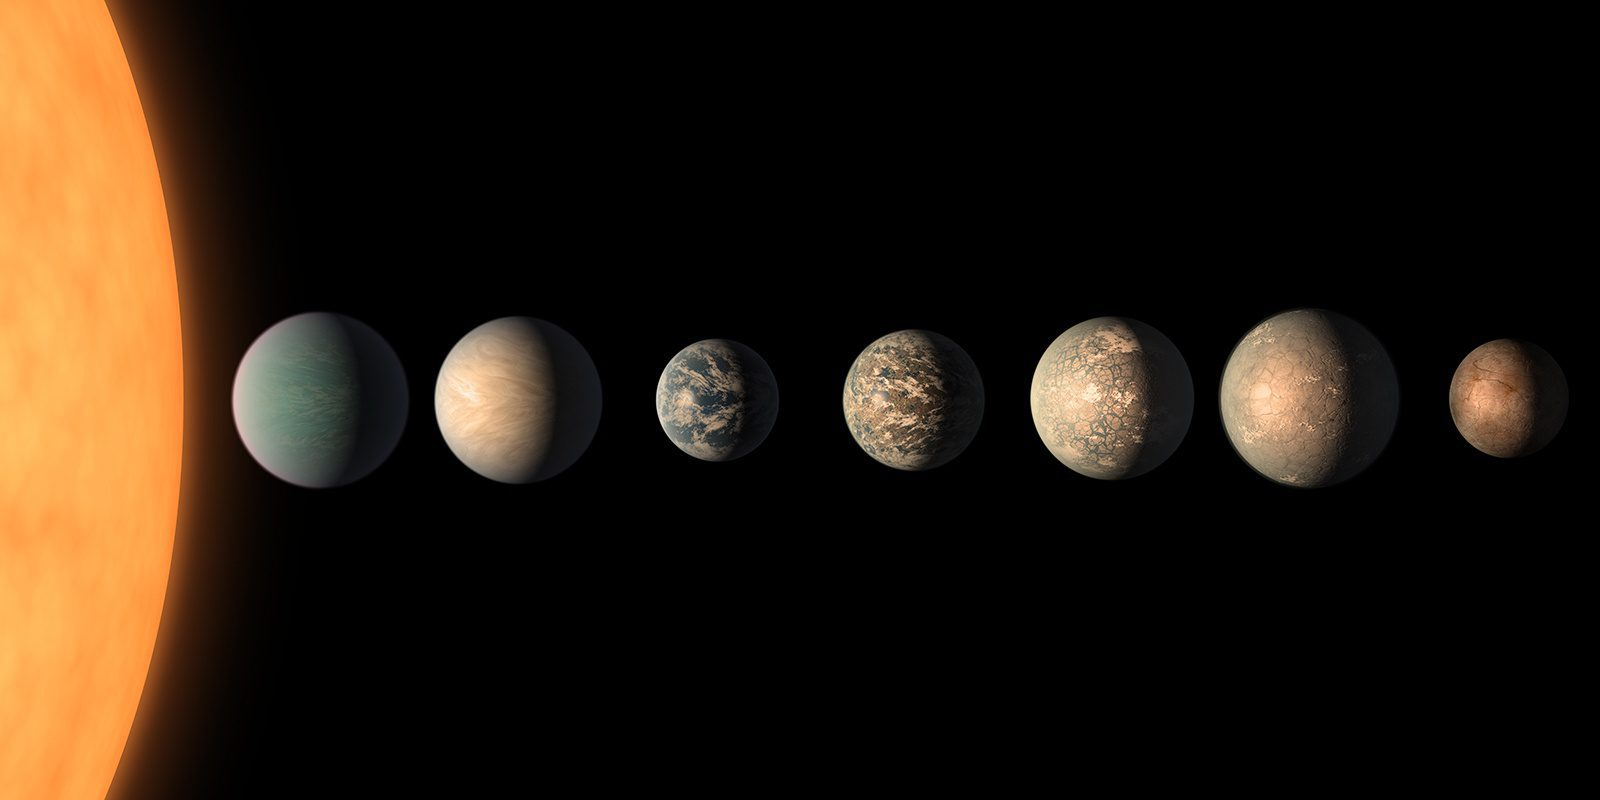 what planet is a terrestrial planet